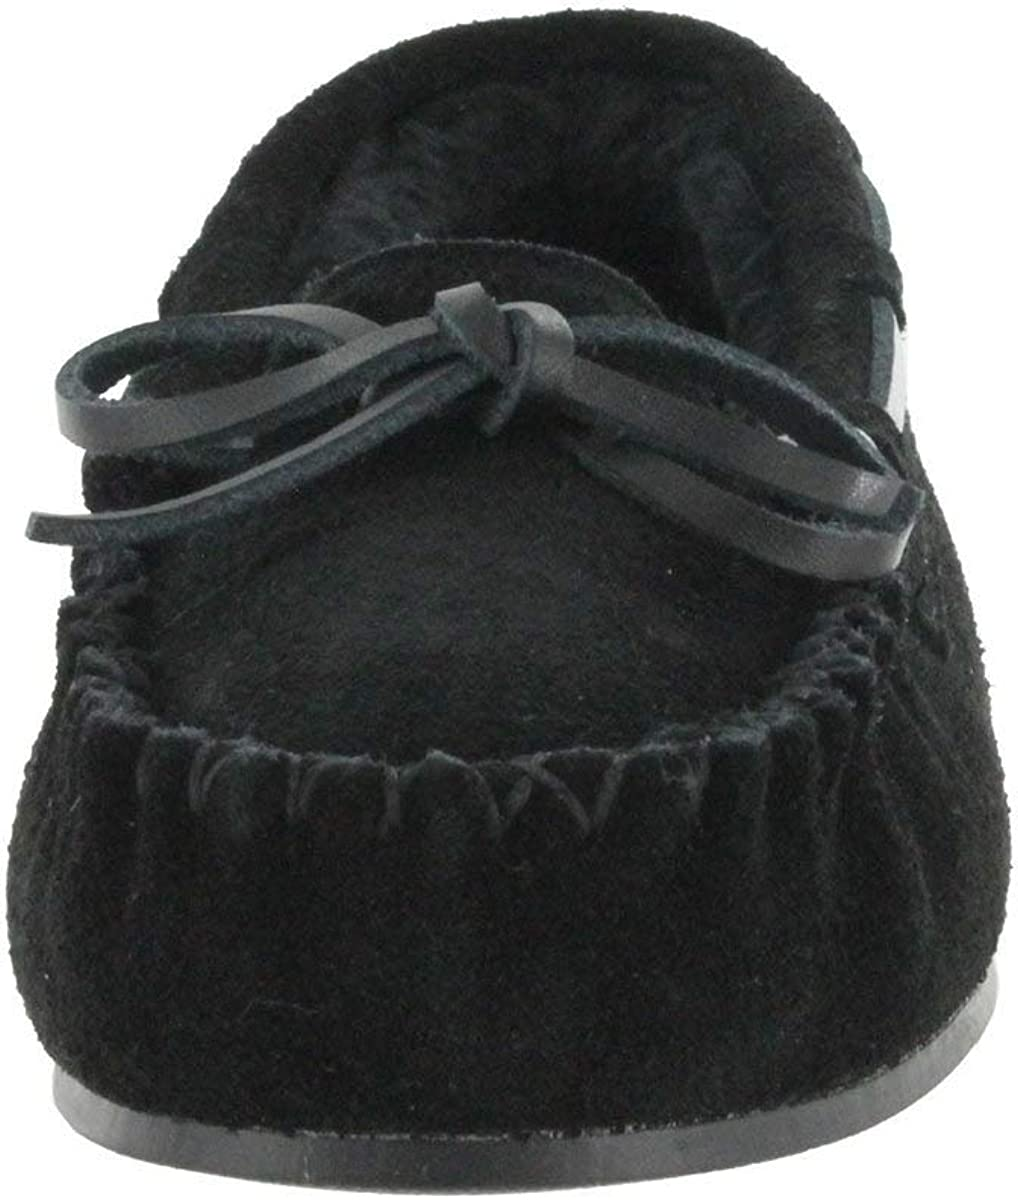 SoftMoc Girls Cady 2 Ballerina Lined Moccasin